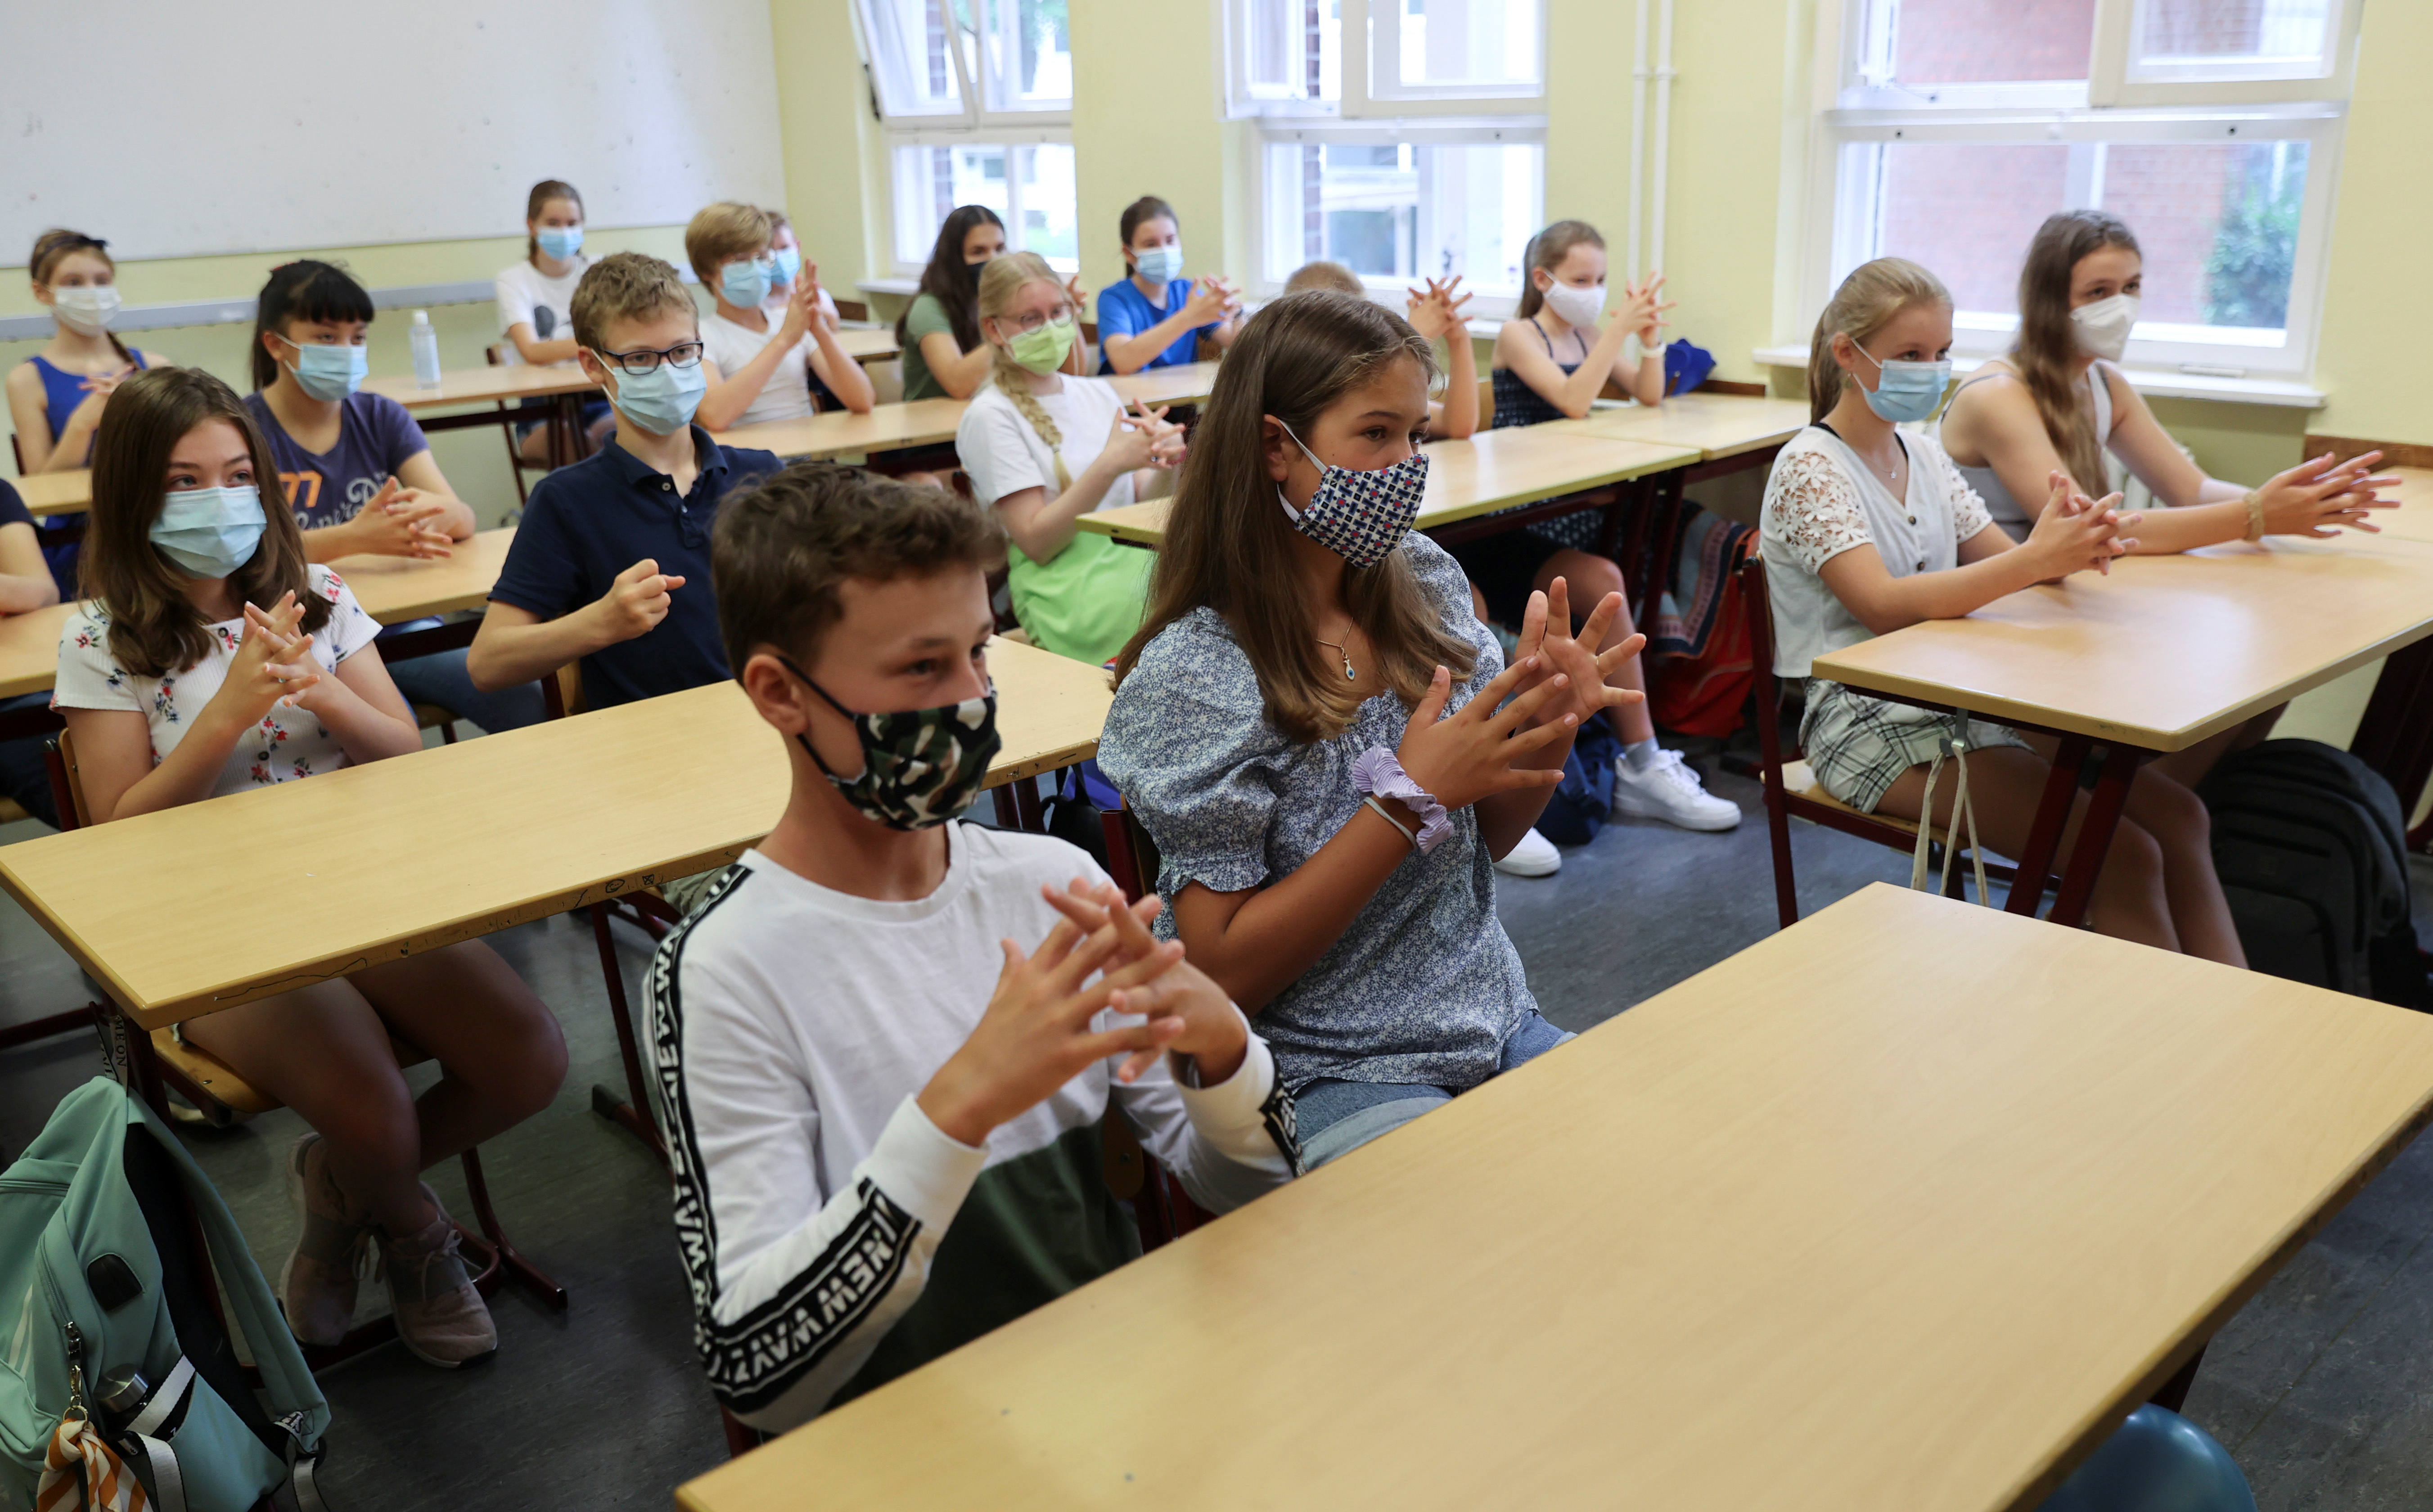 """Pupils of the protestant high school """"Zum Grauen Kloster"""" practice hand disinfection during their lesson on the first day after the summer holidays, amid the coronavirus disease (COVID-19) pandemic, in Berlin, Germany, August 10, 2020. REUTERS/Fabrizio Bensch"""